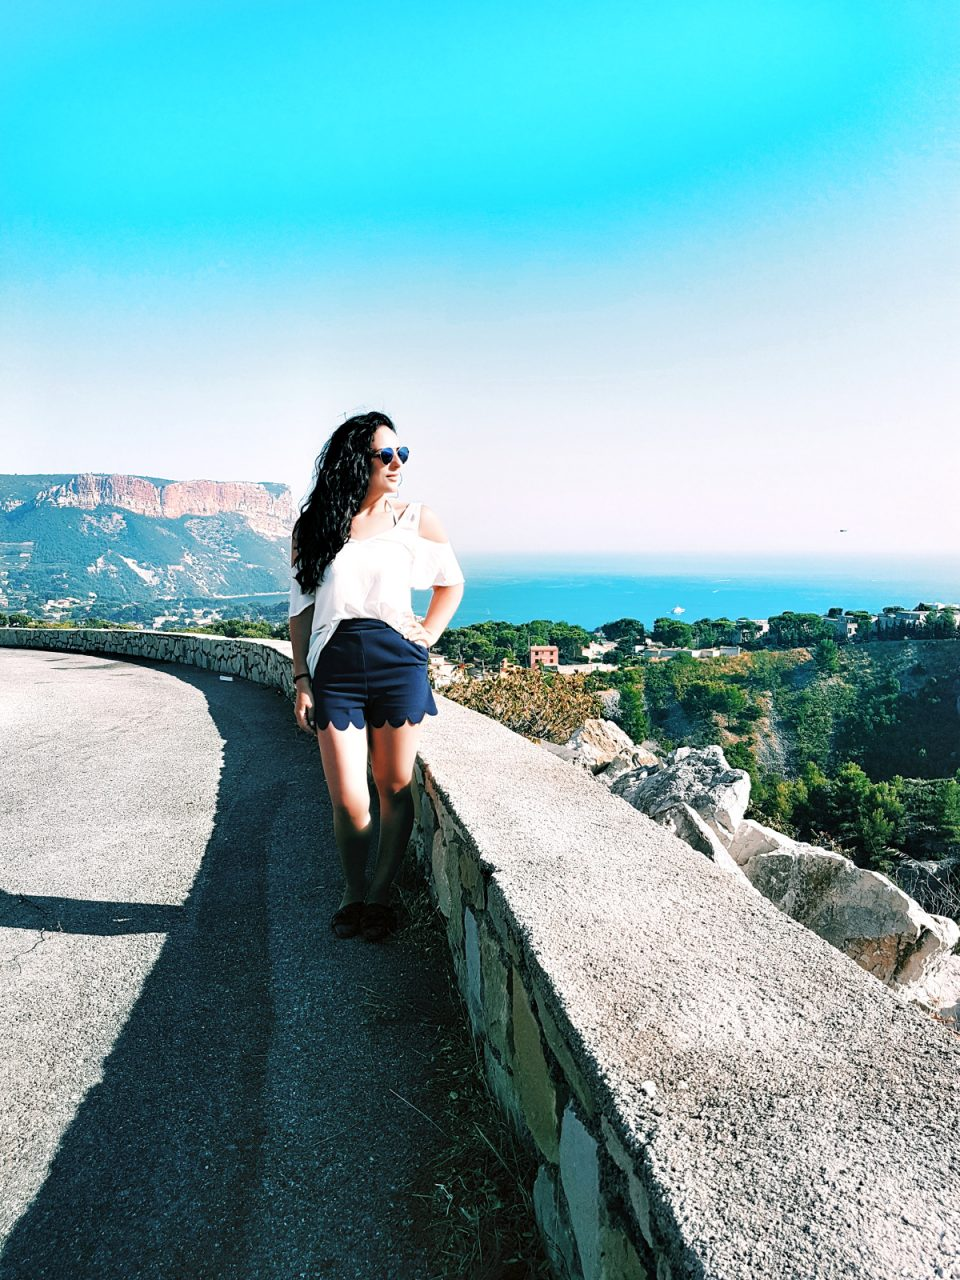 blaue-shorts-weißes-top-modeblog-fashionblog-sommer-outfit.